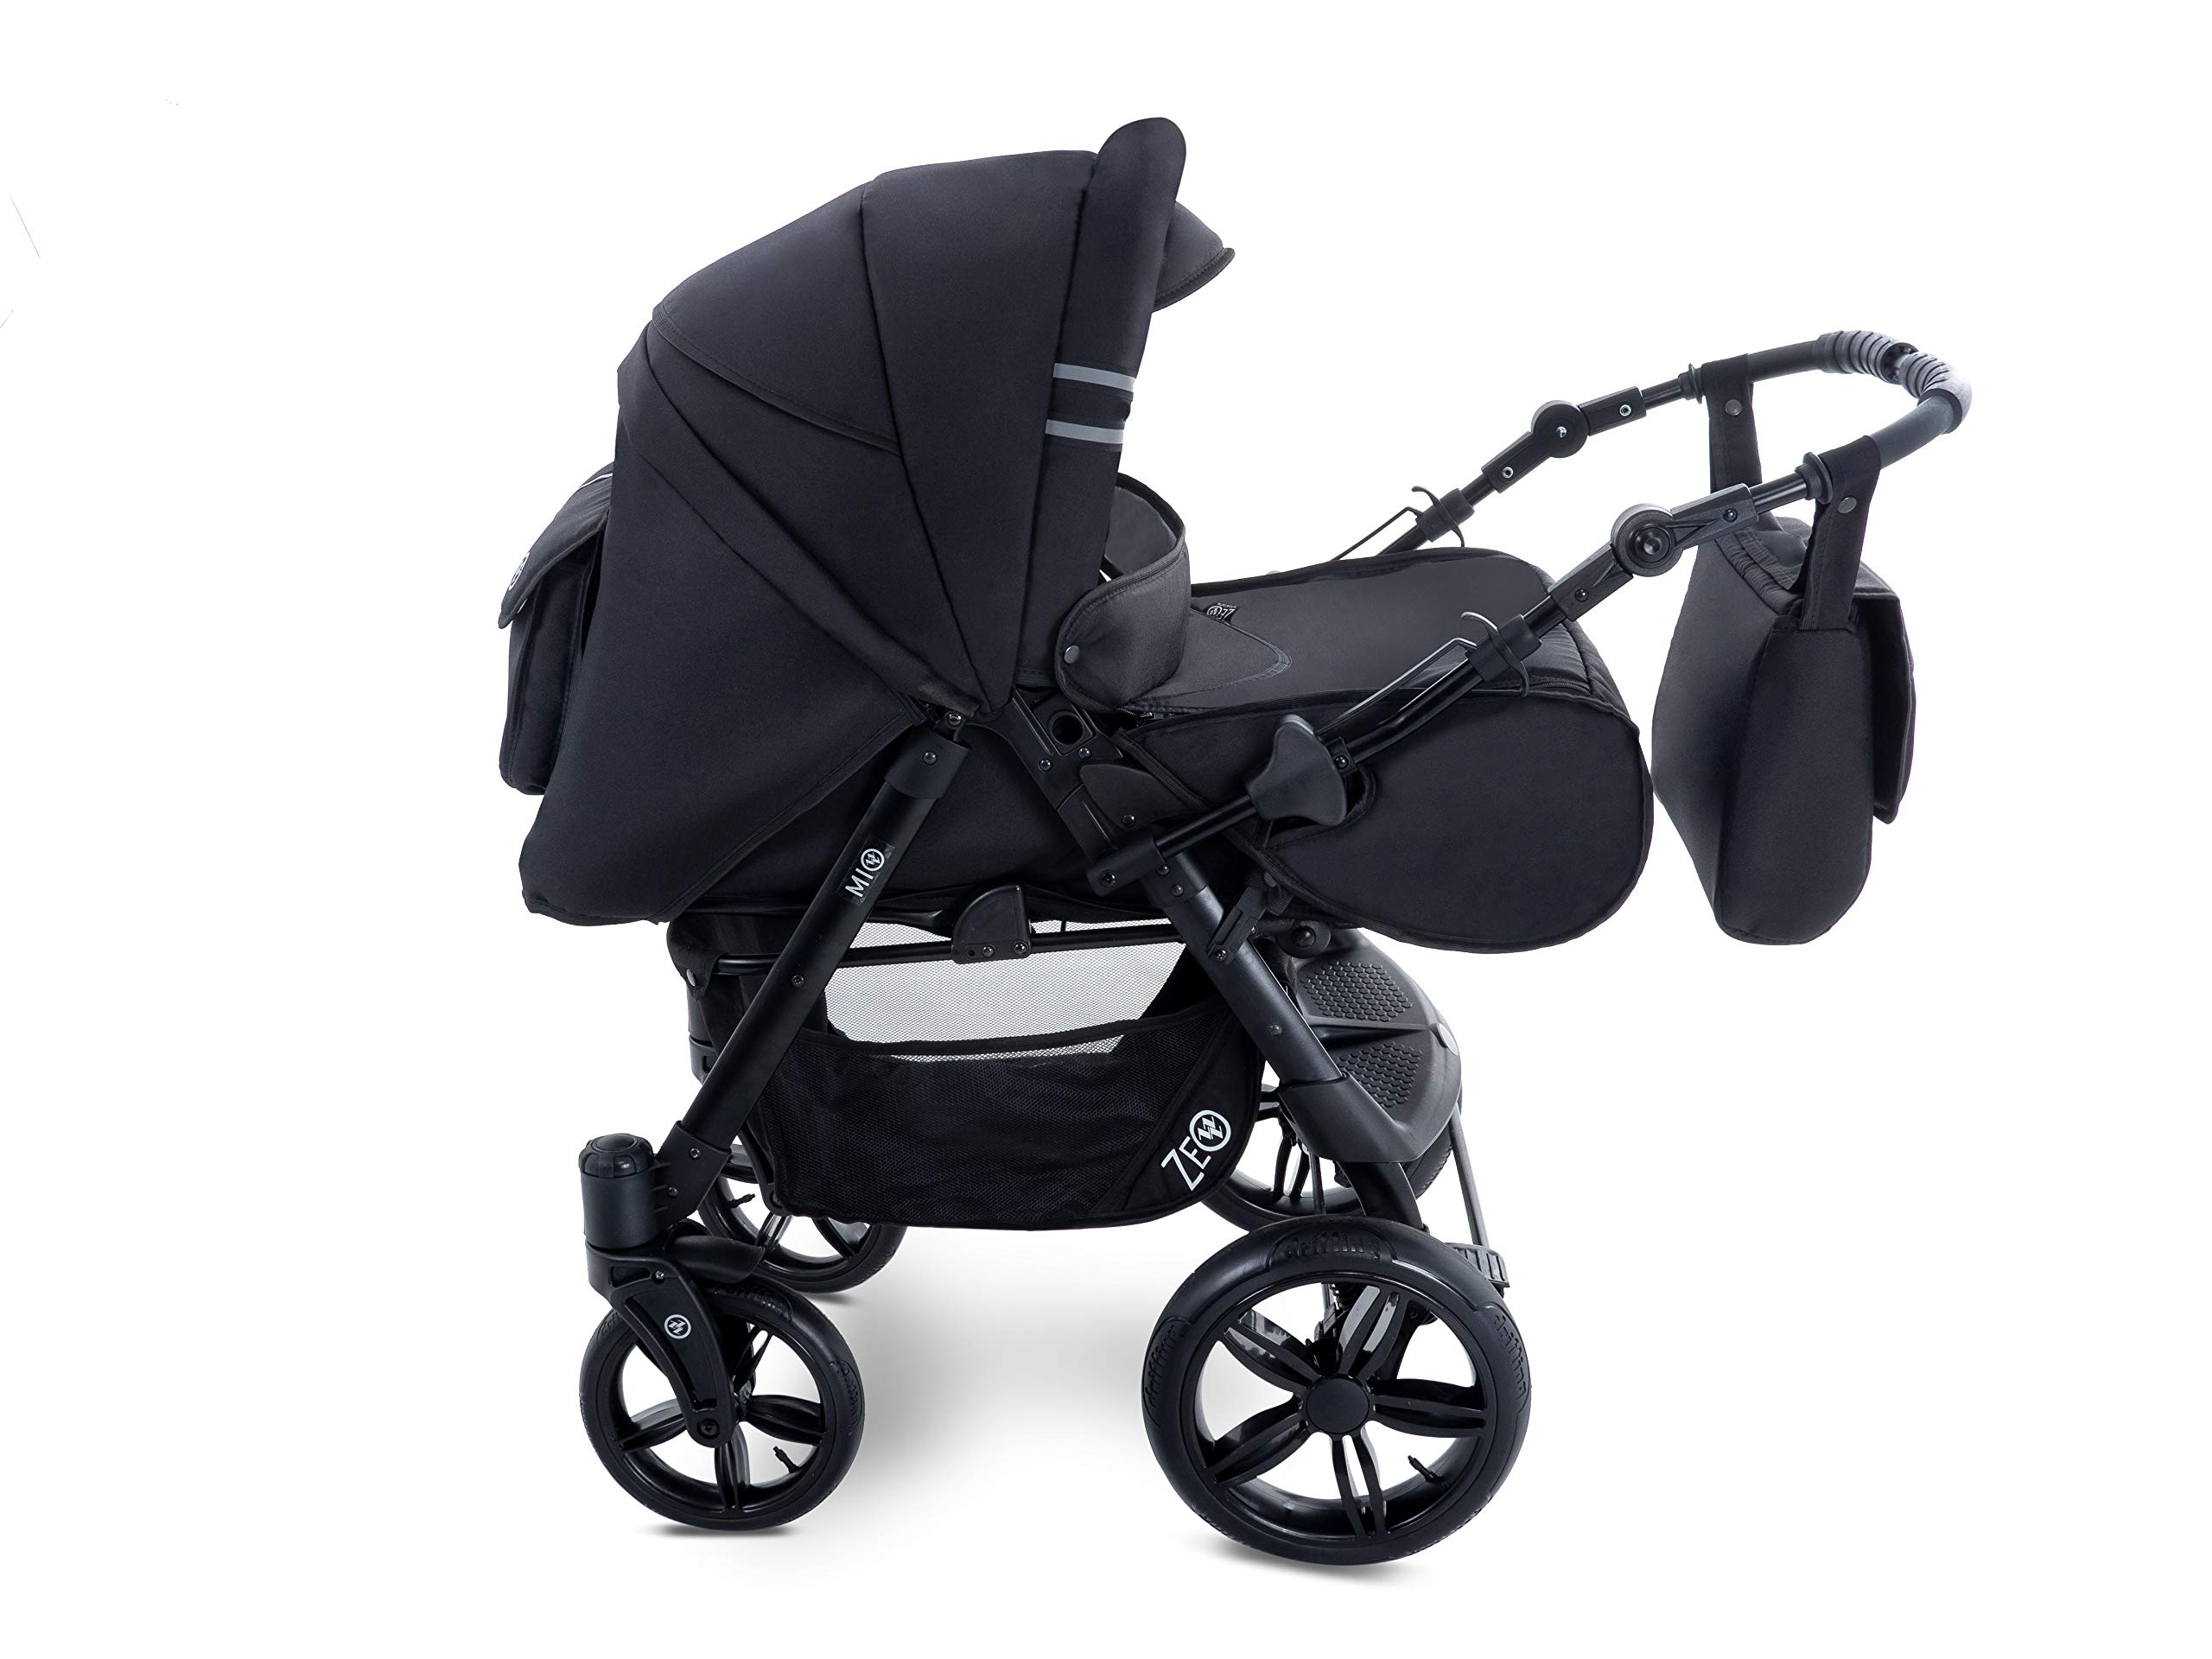 Baby Pram Zeo Mio 3in1 Set - All You Need! carrycot Gondola Buggy Sport Part Pushchair car seat (M1)  3 in 1 combination stroller complete set, with reversible handle to the buggy, child car seat or baby carriage Has 360 ° swiveling wheels, two-fold suspension, four-stage backrest, five-position adjustable footrest and a five-point safety belt The stroller can be easily converted into other functions and easy to transport 3